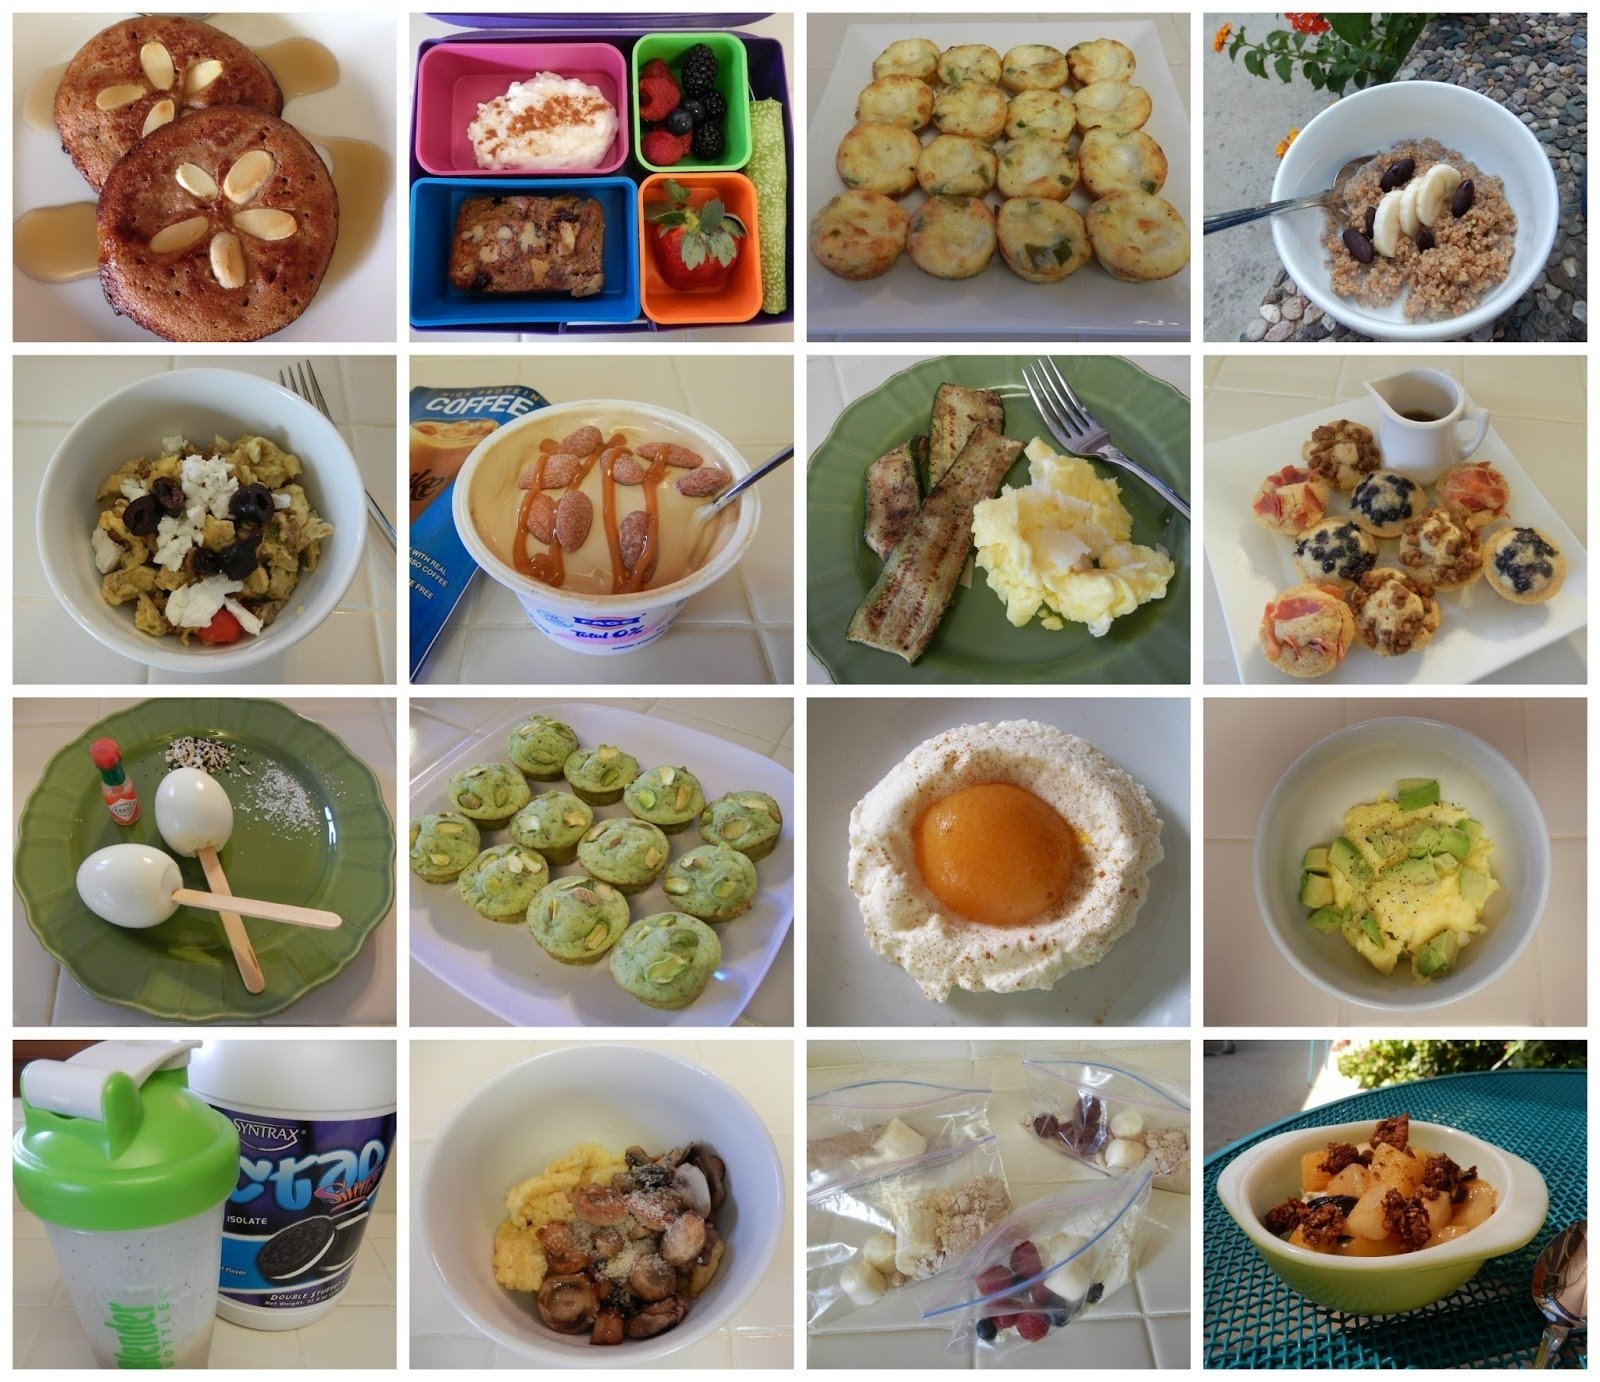 10 Most Popular Meal Ideas For Weight Loss weight loss recipes oodles of healthy breakfast ideas weight loss zone 1 2020